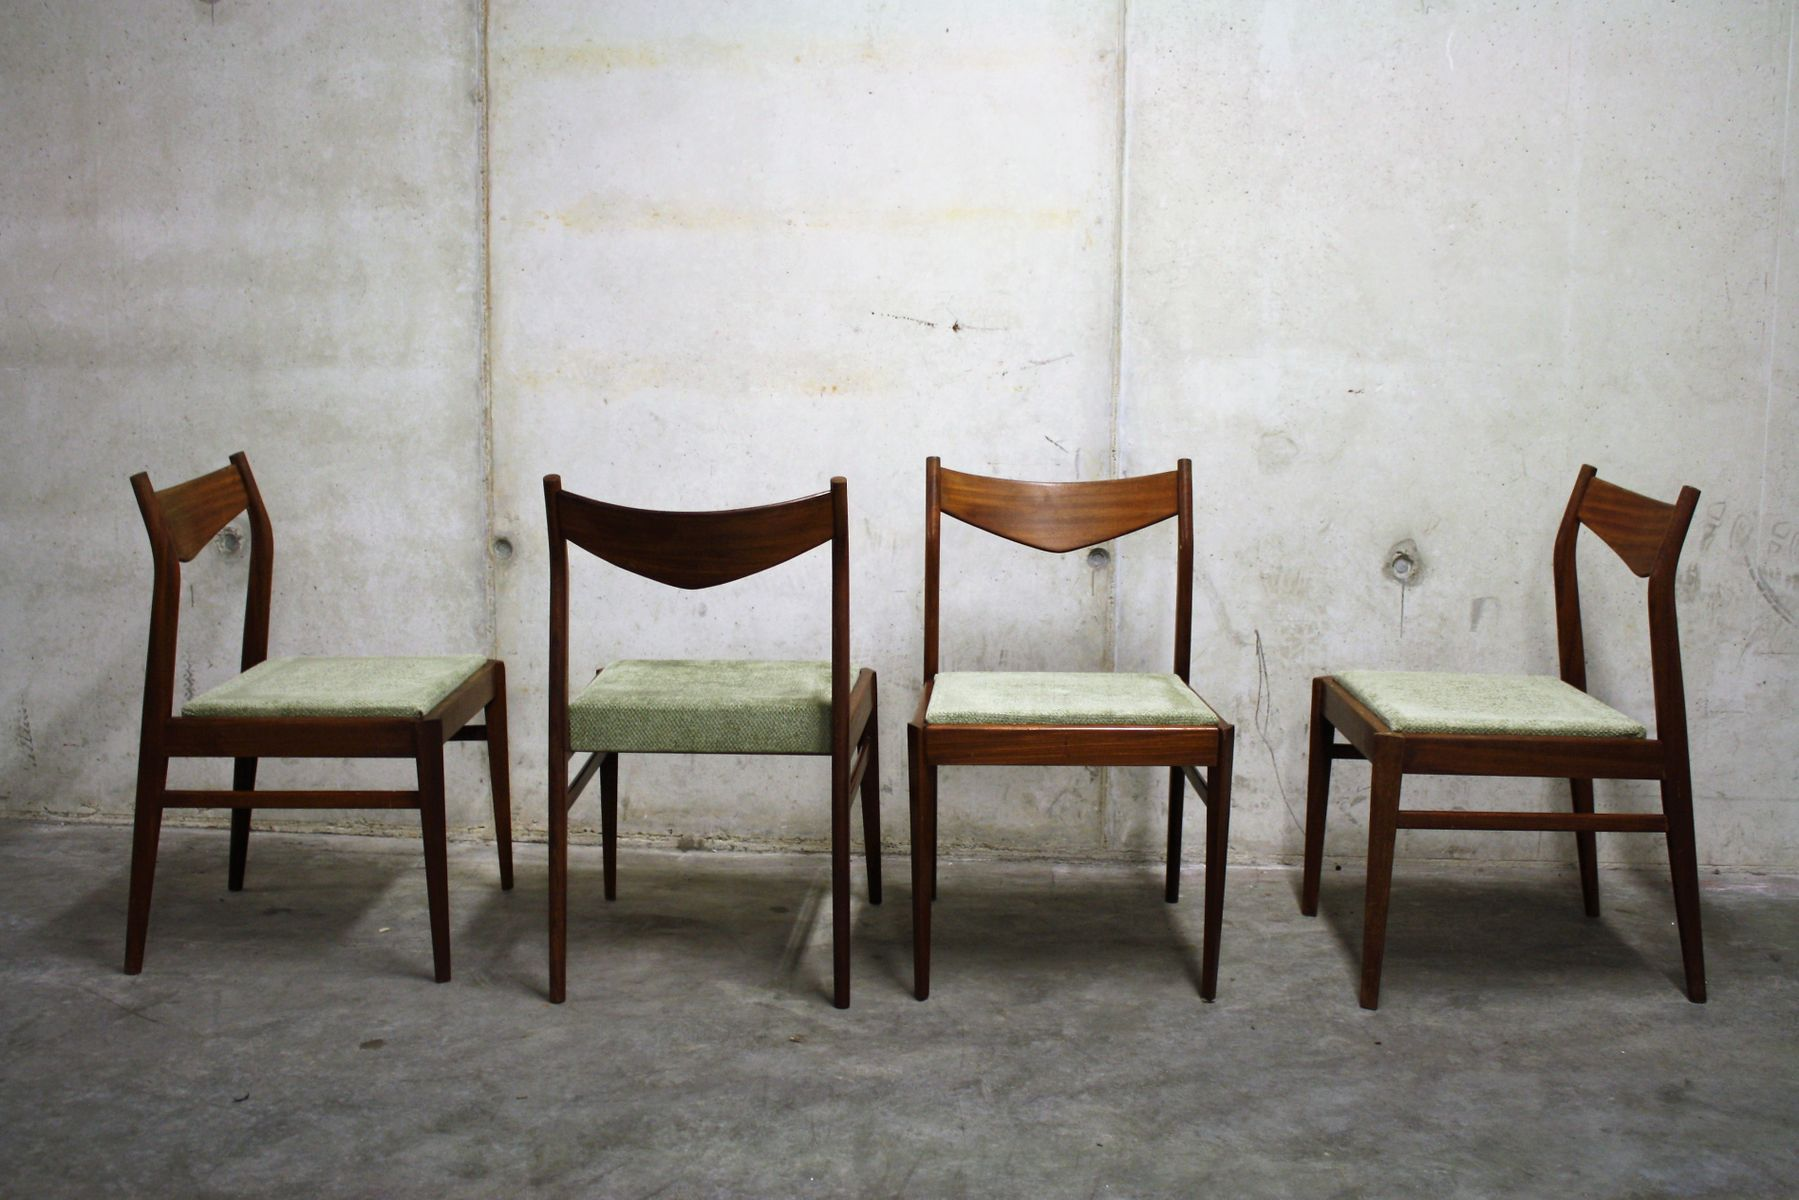 Chaises de Salon Scandinaves Vintage, 1960s, Set de 4 en vente sur ...